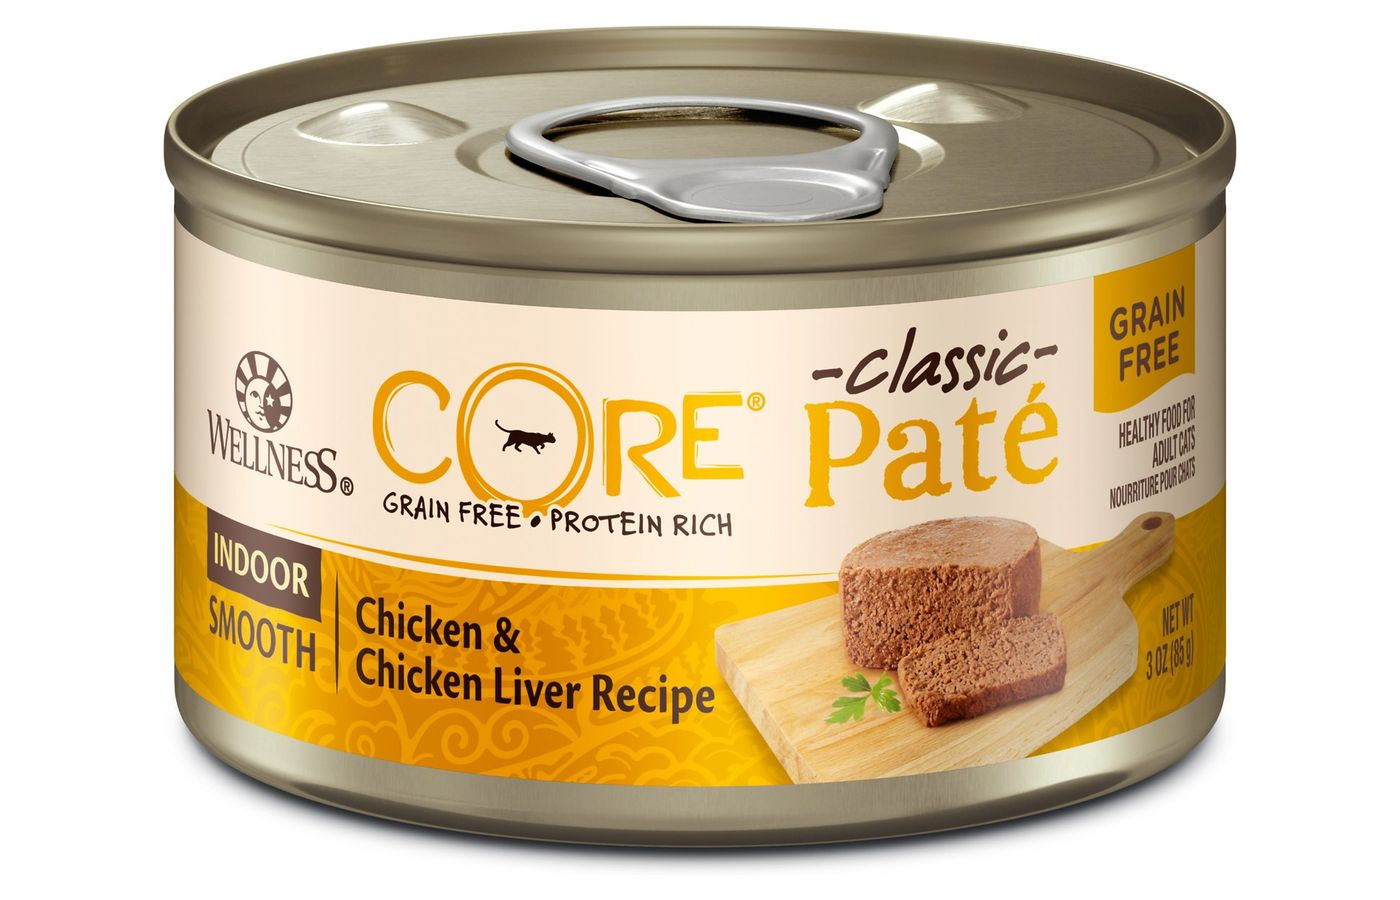 Wellness CORE Grain-Free Chicken Canned Cat Food